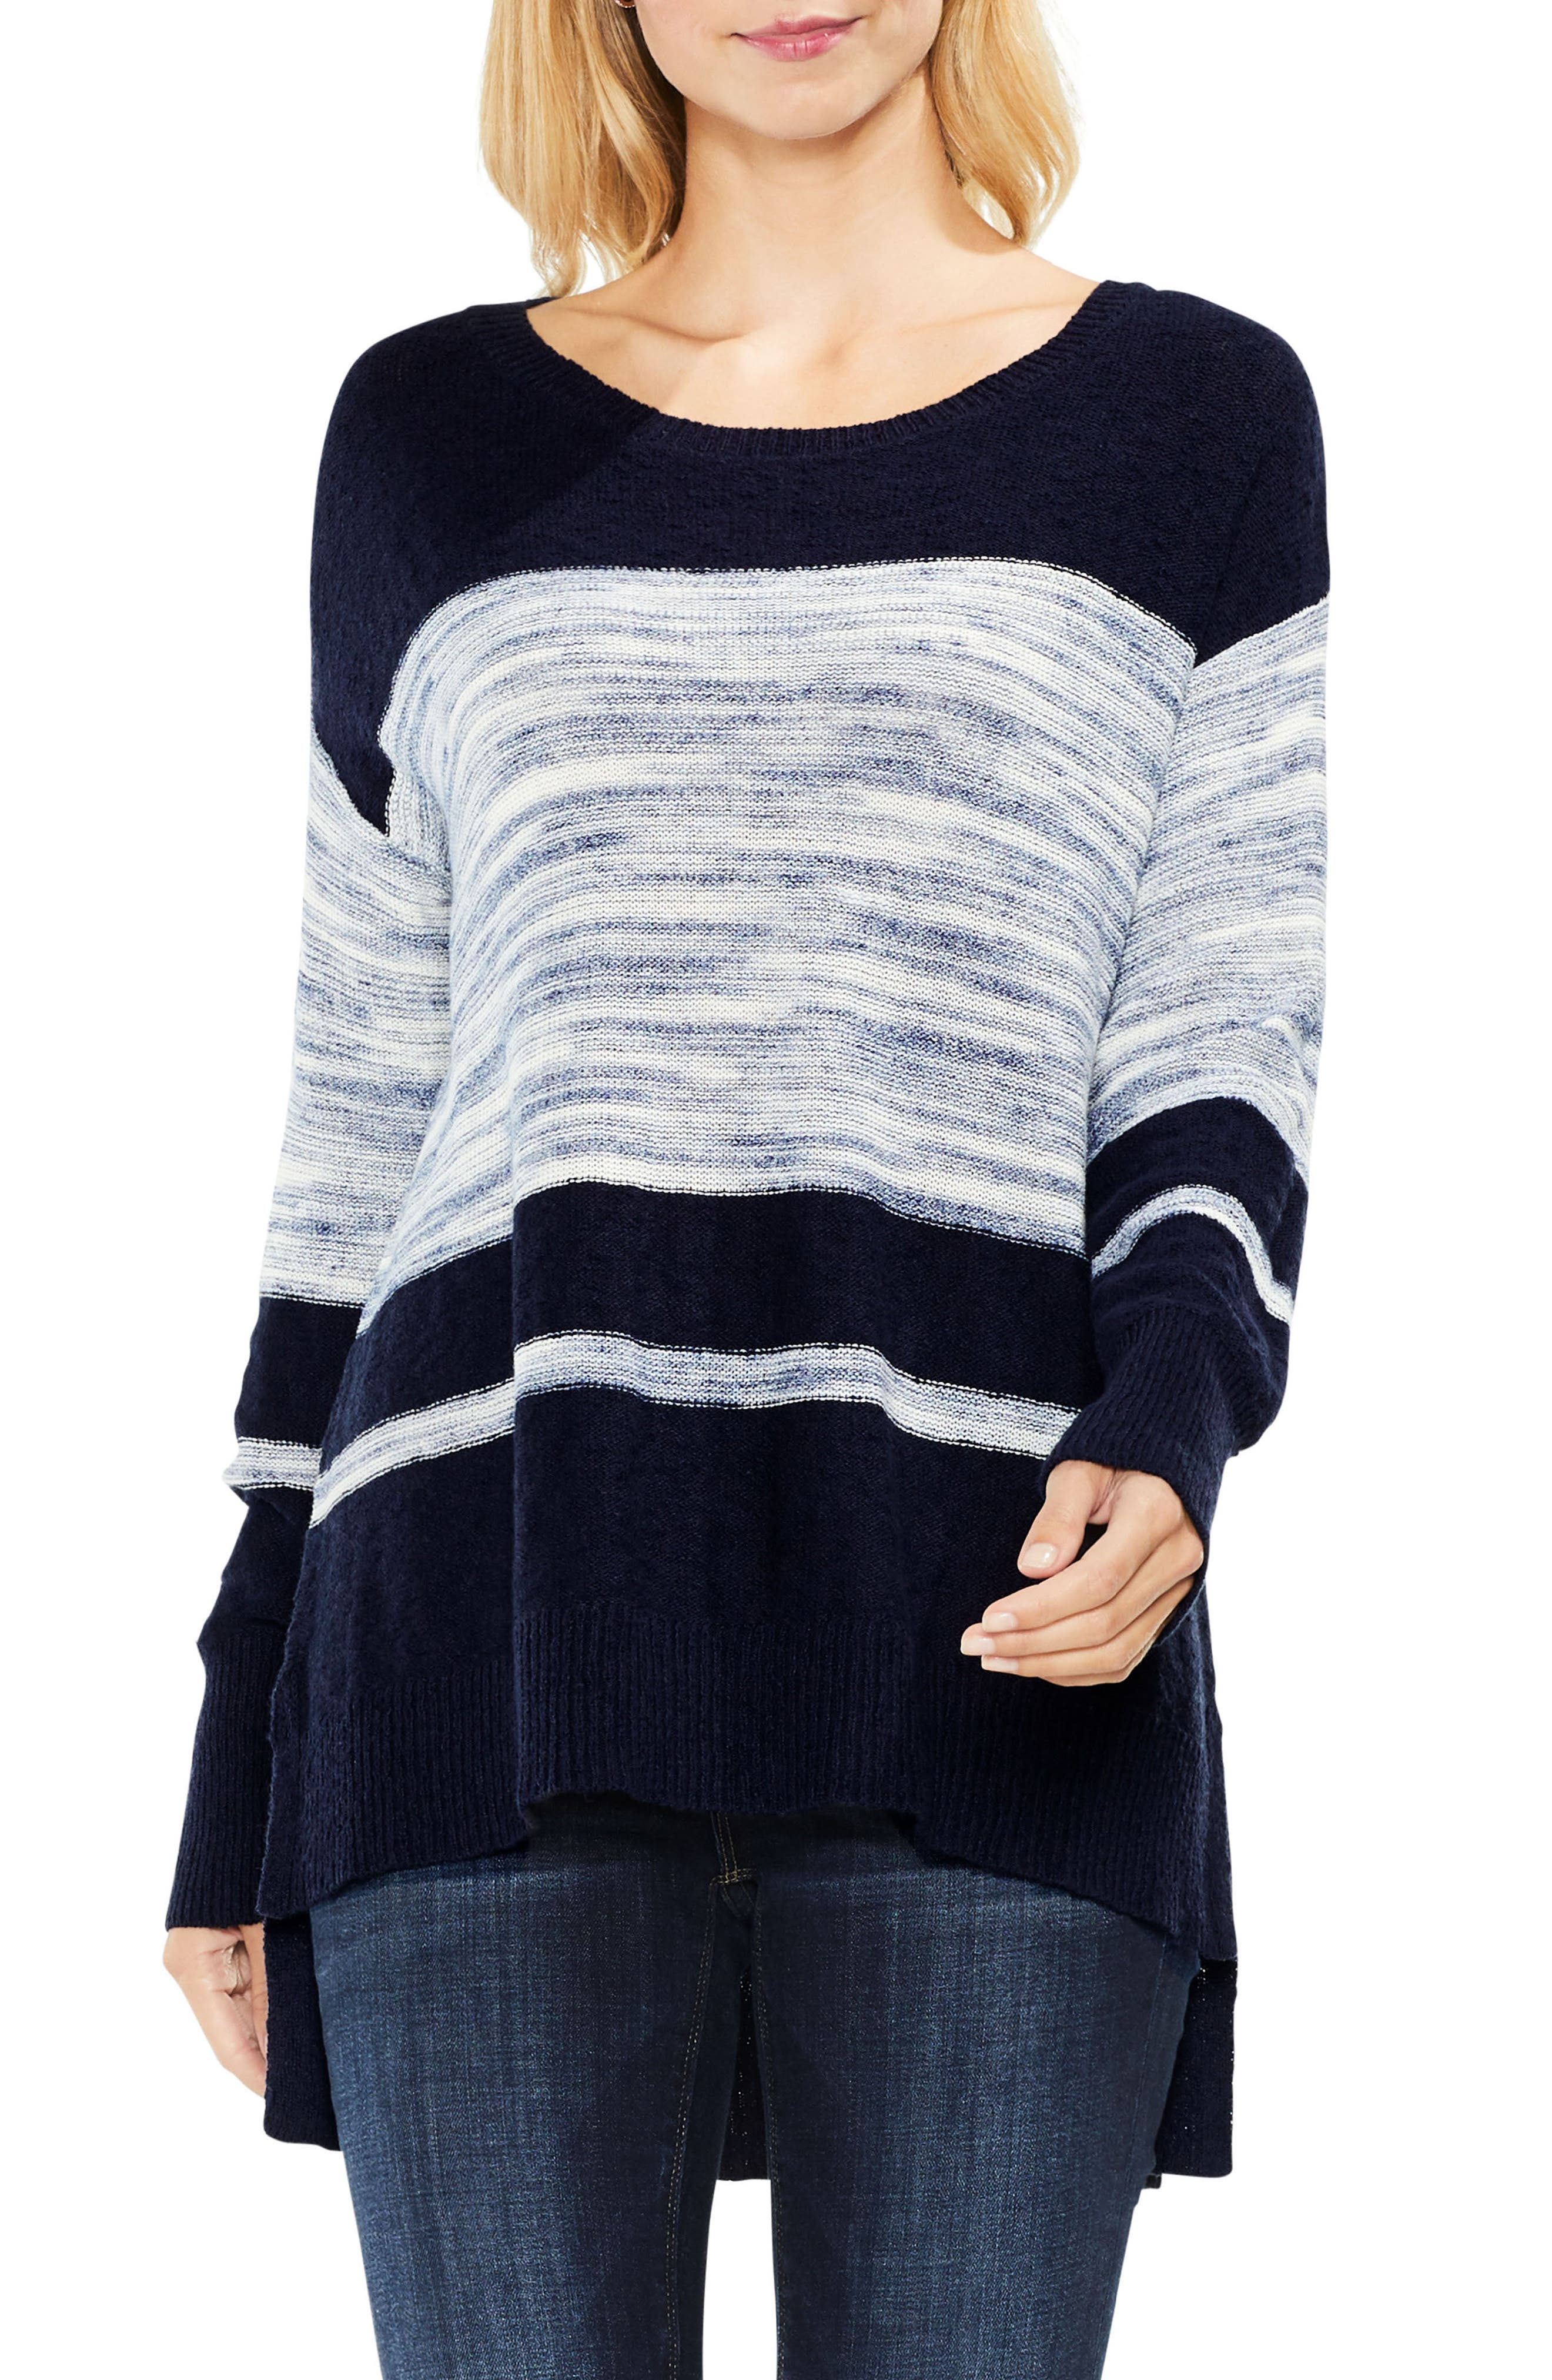 Alternate Image 1 Selected - Two by Vince Camuto Space Dye Stripe Sweater